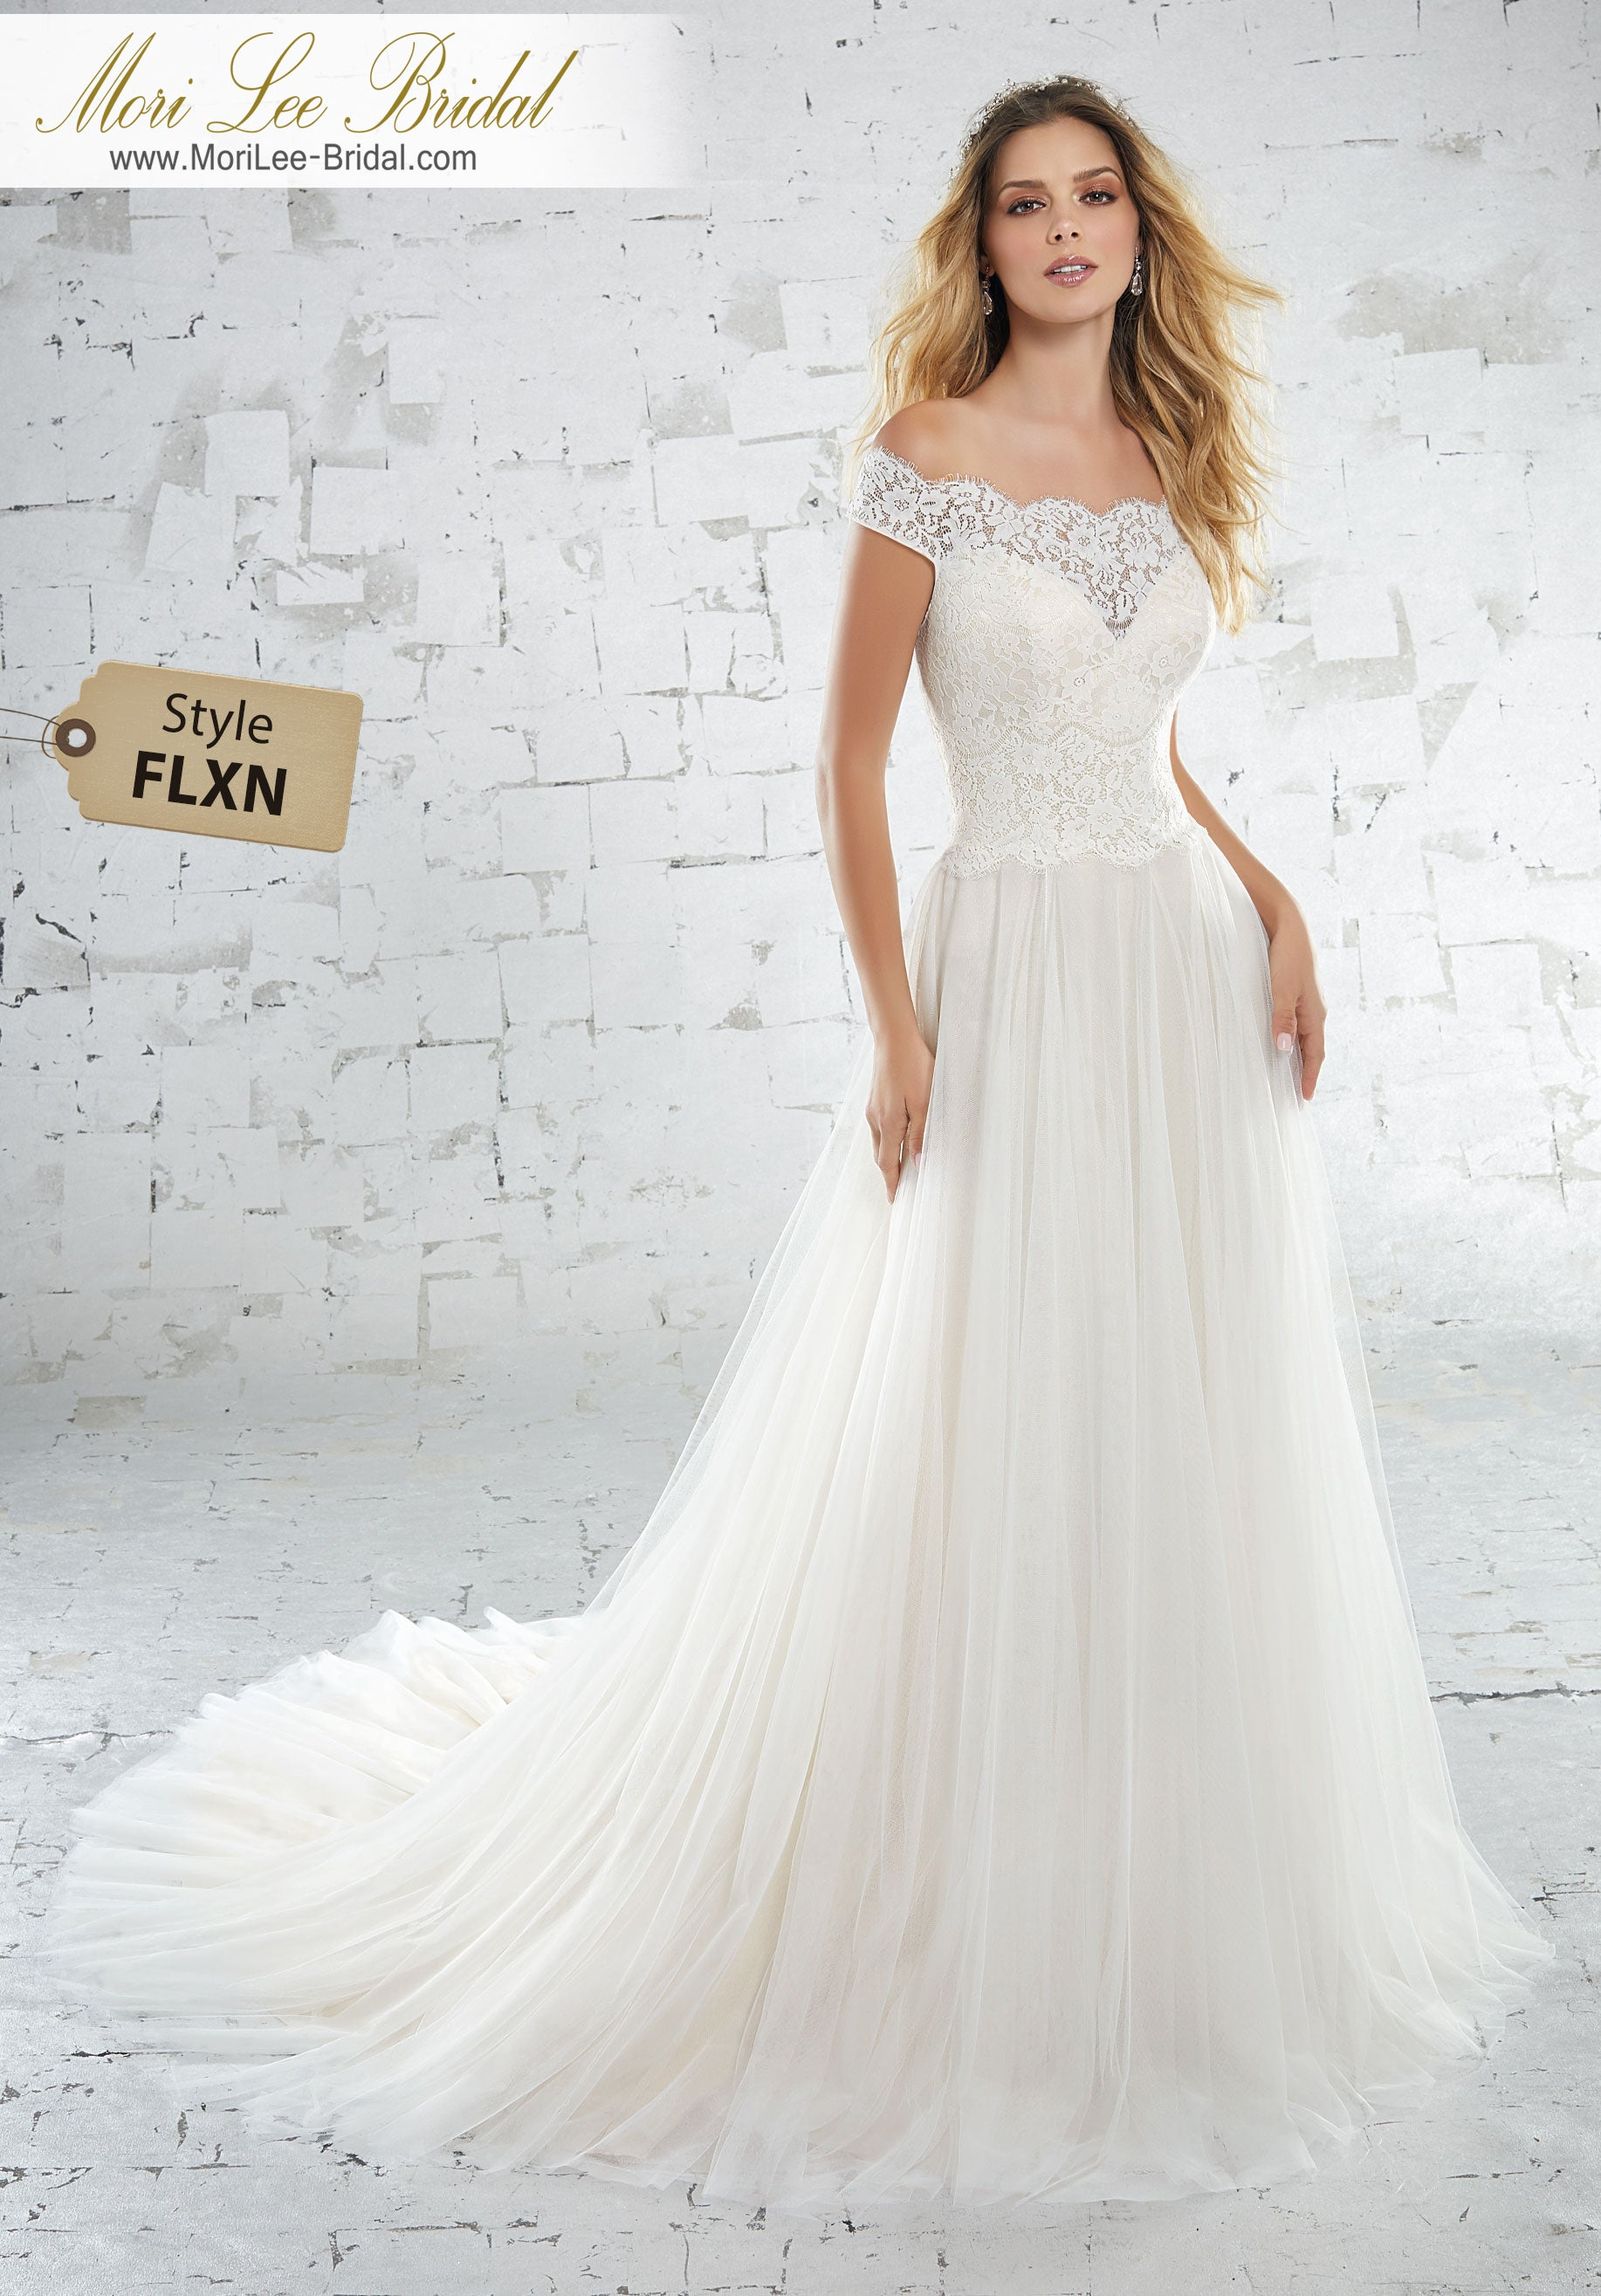 FLXN - Mori Lee Bridal